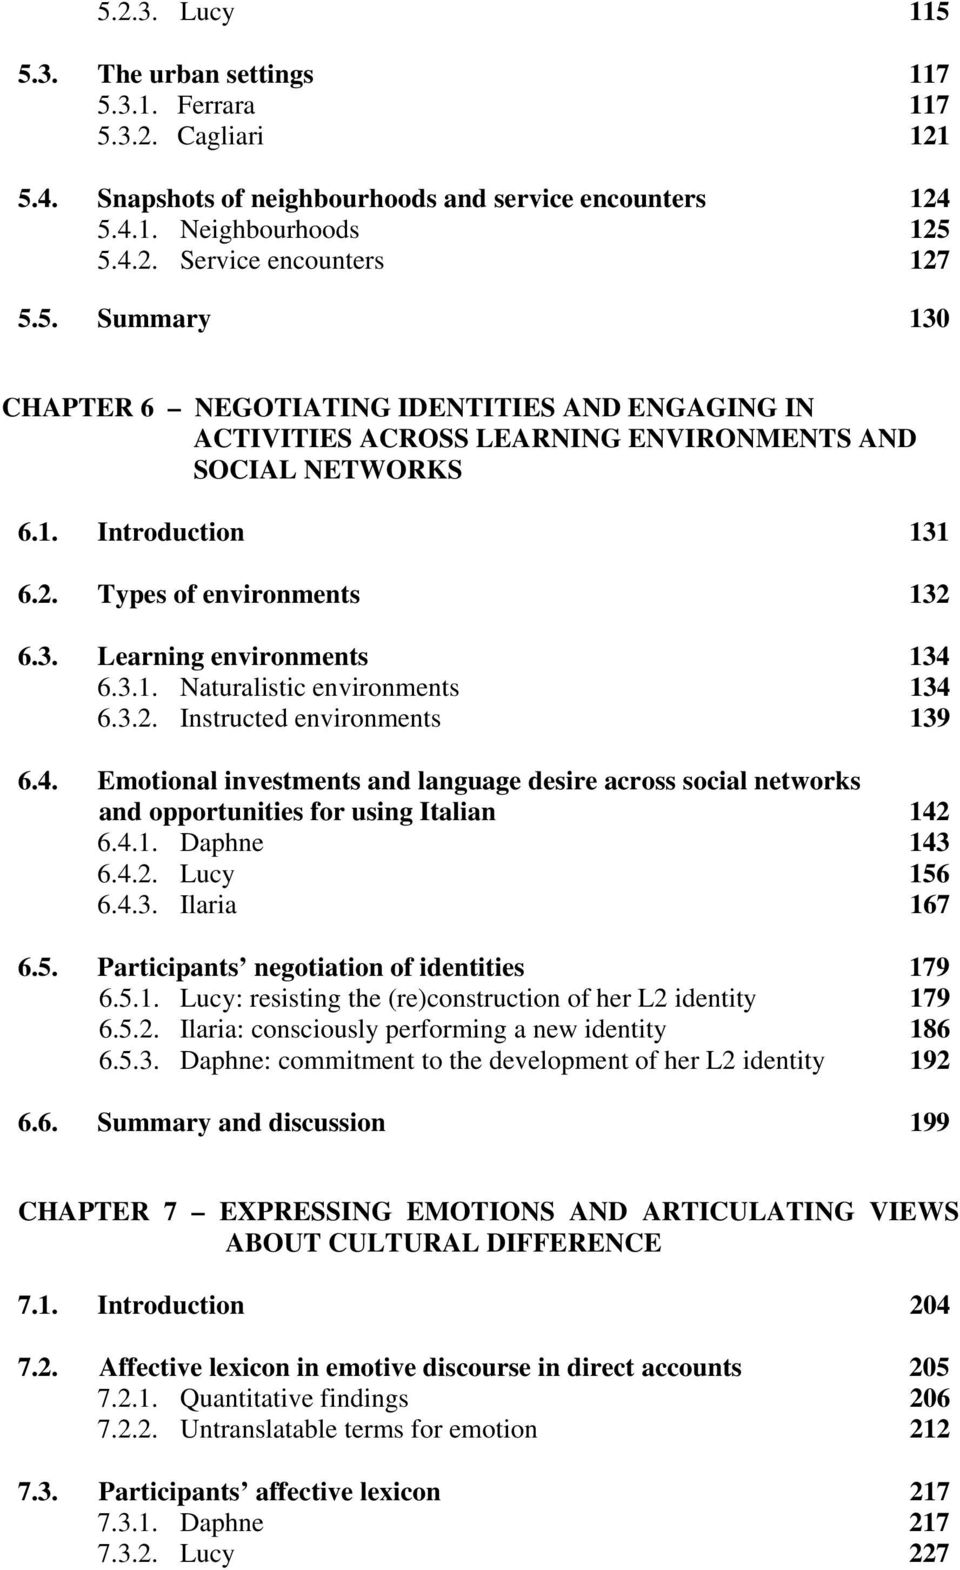 3.1. Naturalistic environments 134 6.3.2. Instructed environments 139 6.4. Emotional investments and language desire across social networks and opportunities for using Italian 142 6.4.1. Daphne 143 6.